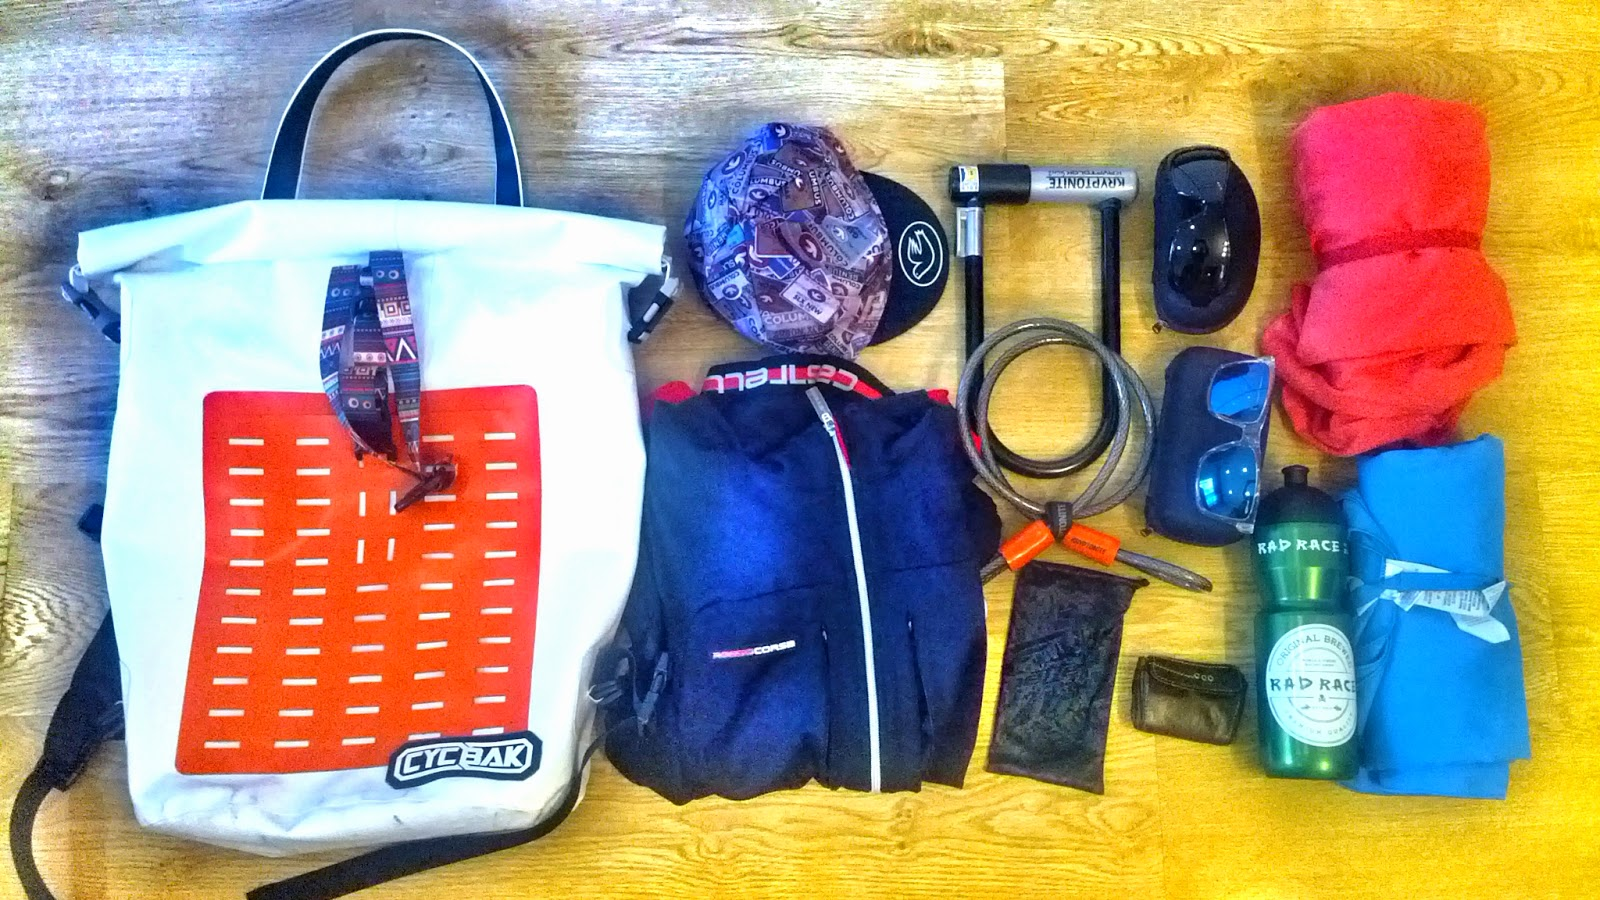 PRODUCT REVIEW: CYCBAK (CB-0528-L) UTILITY BACKPACK